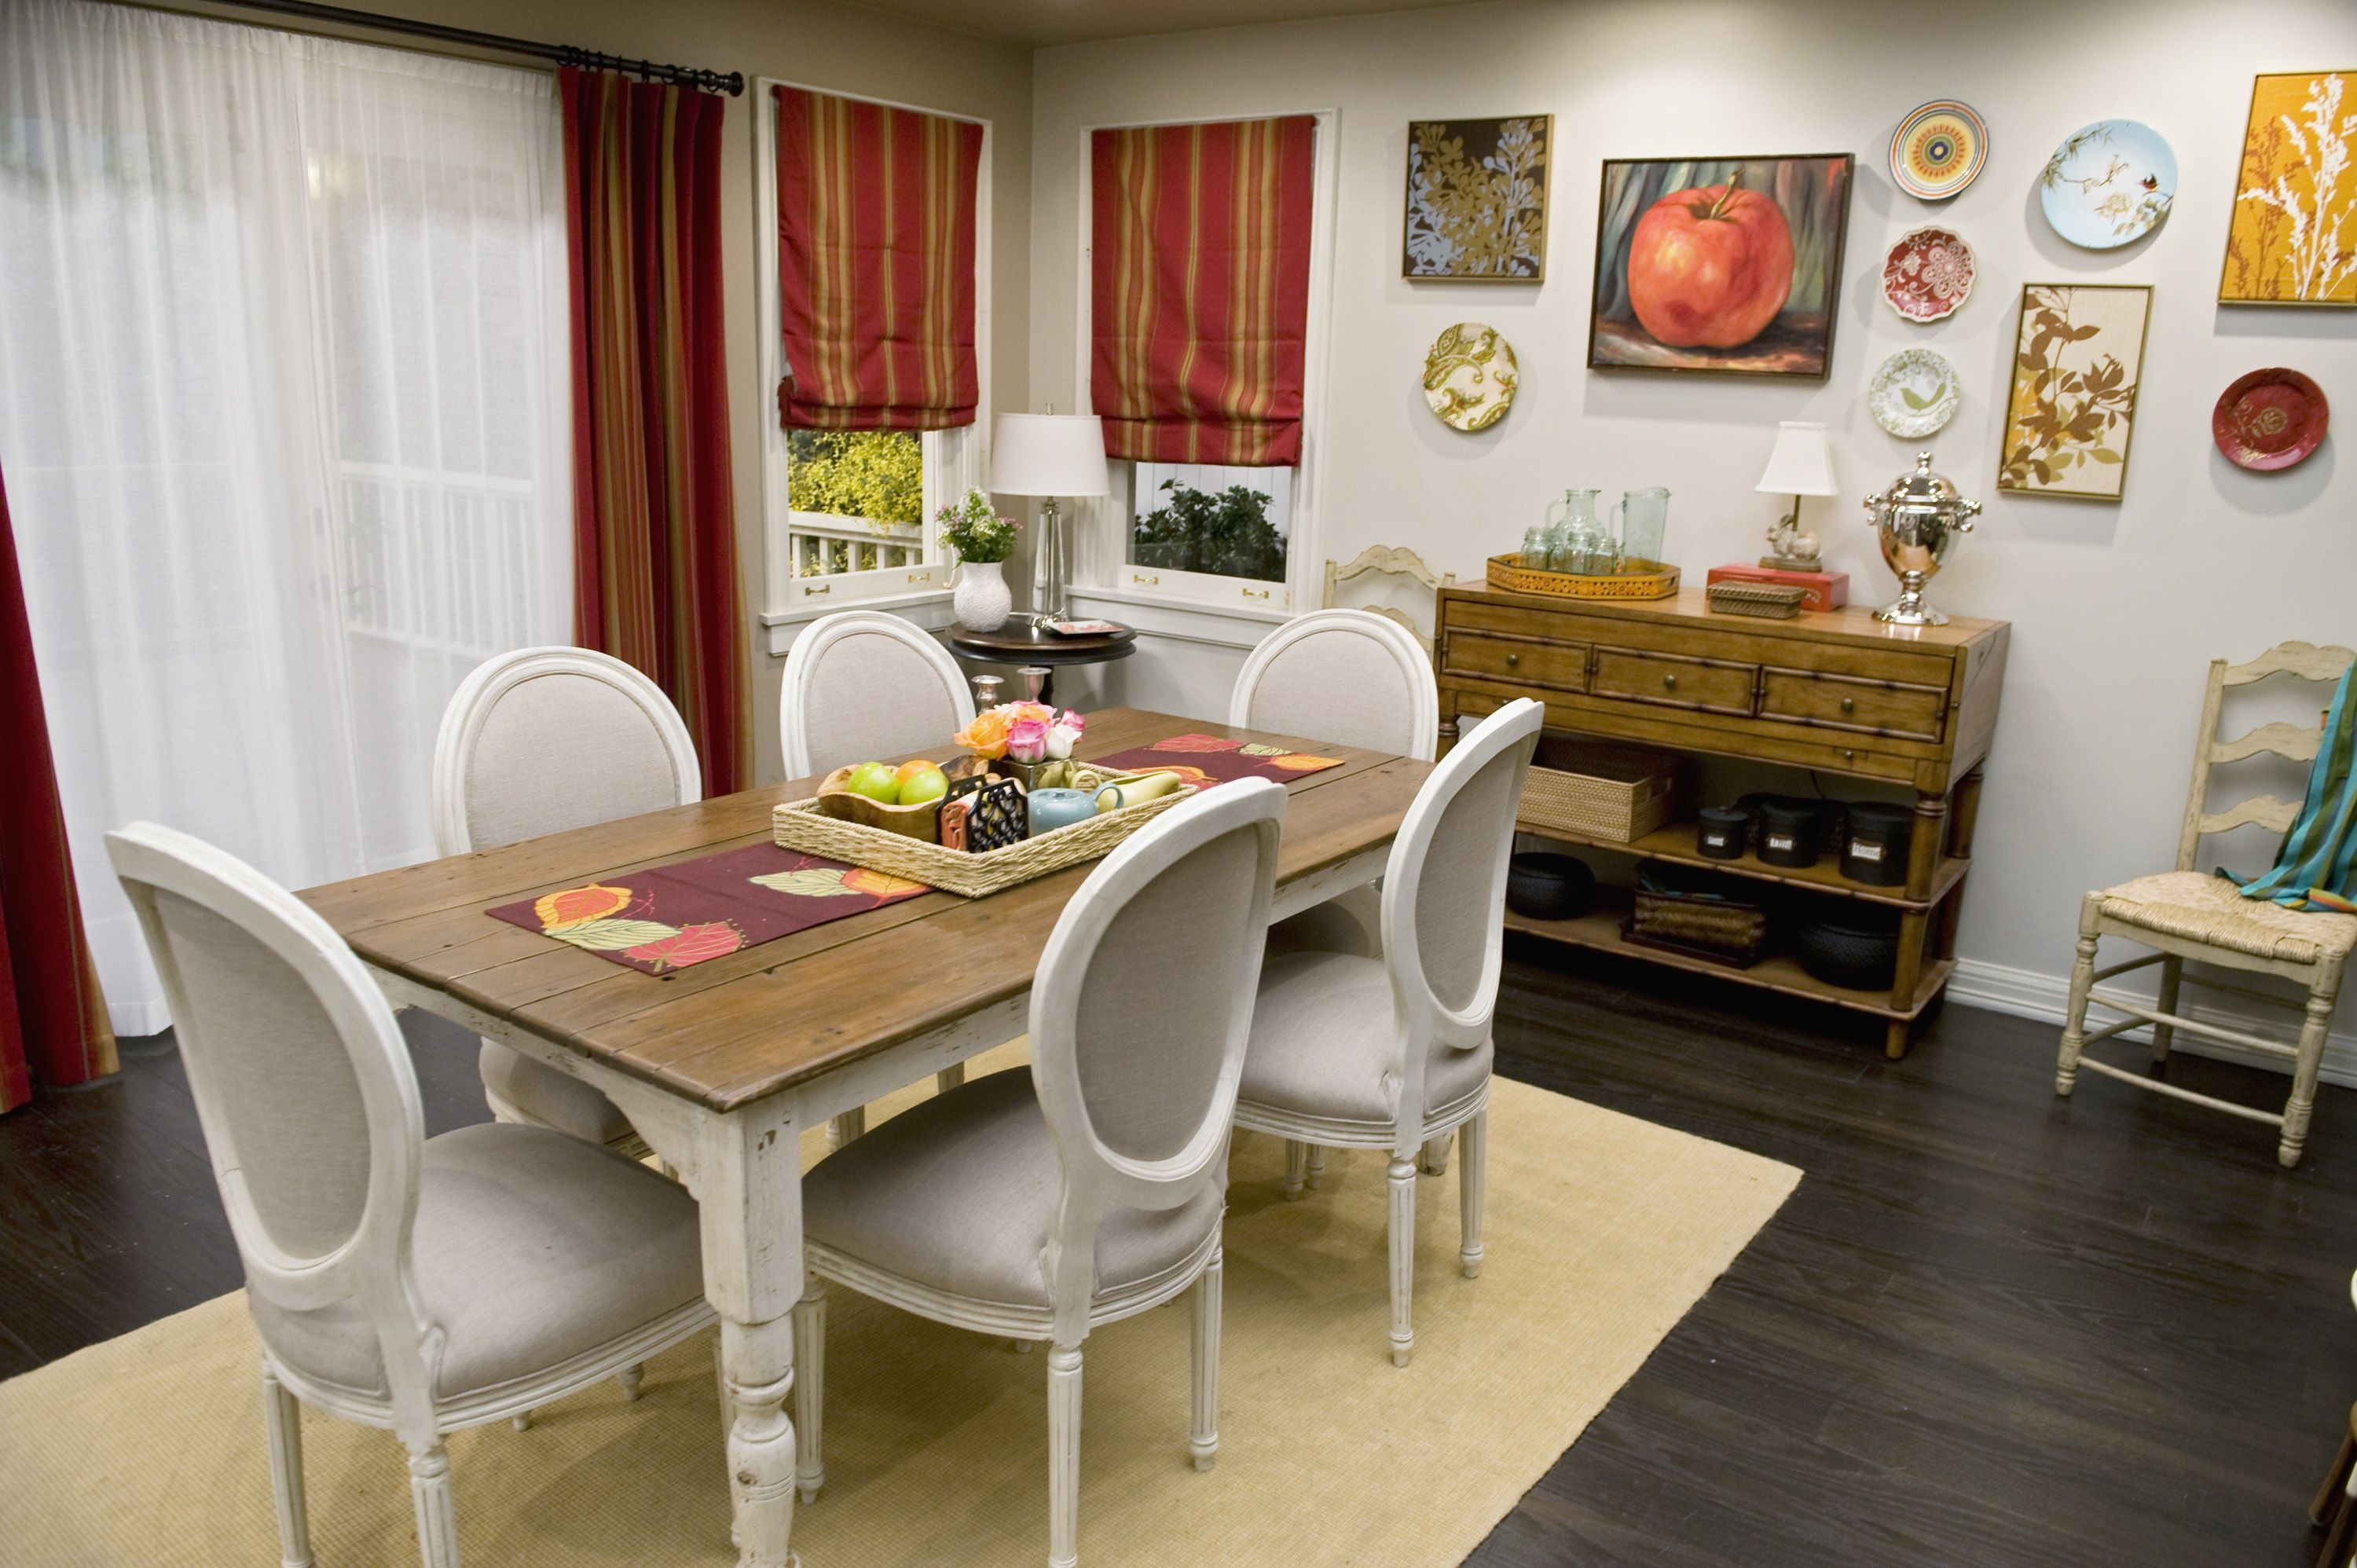 dining room from modern family set like the wall eclectic mix